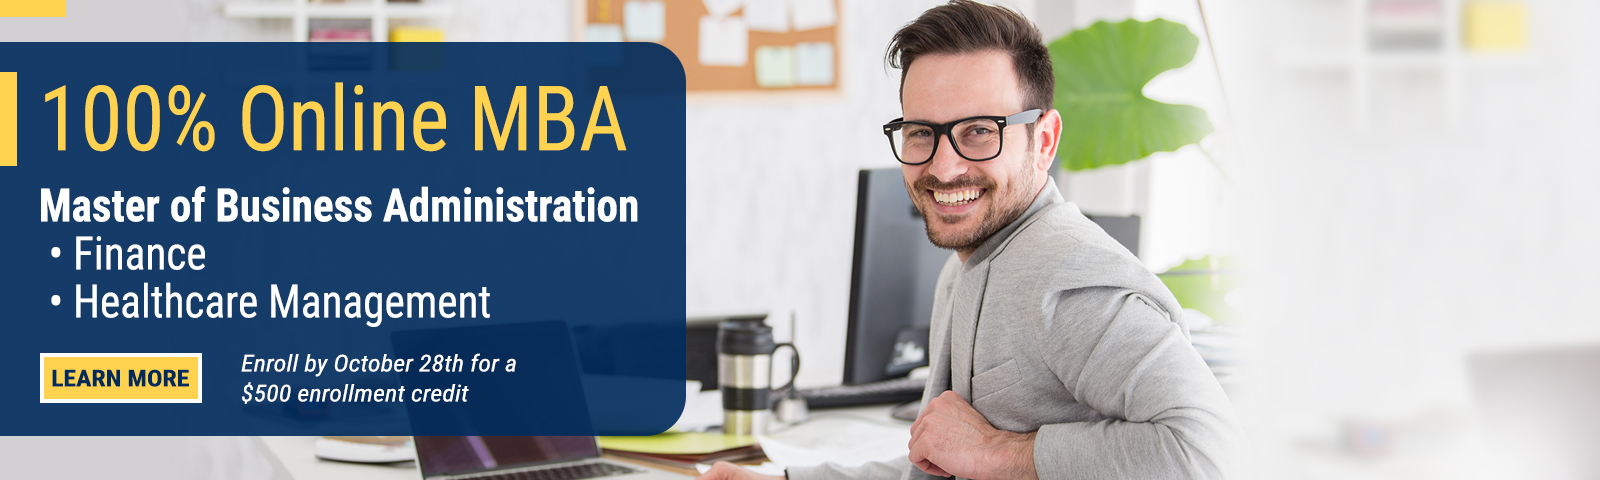 Earn your business or MBA degree 100% online from CIU, an accredited online college.